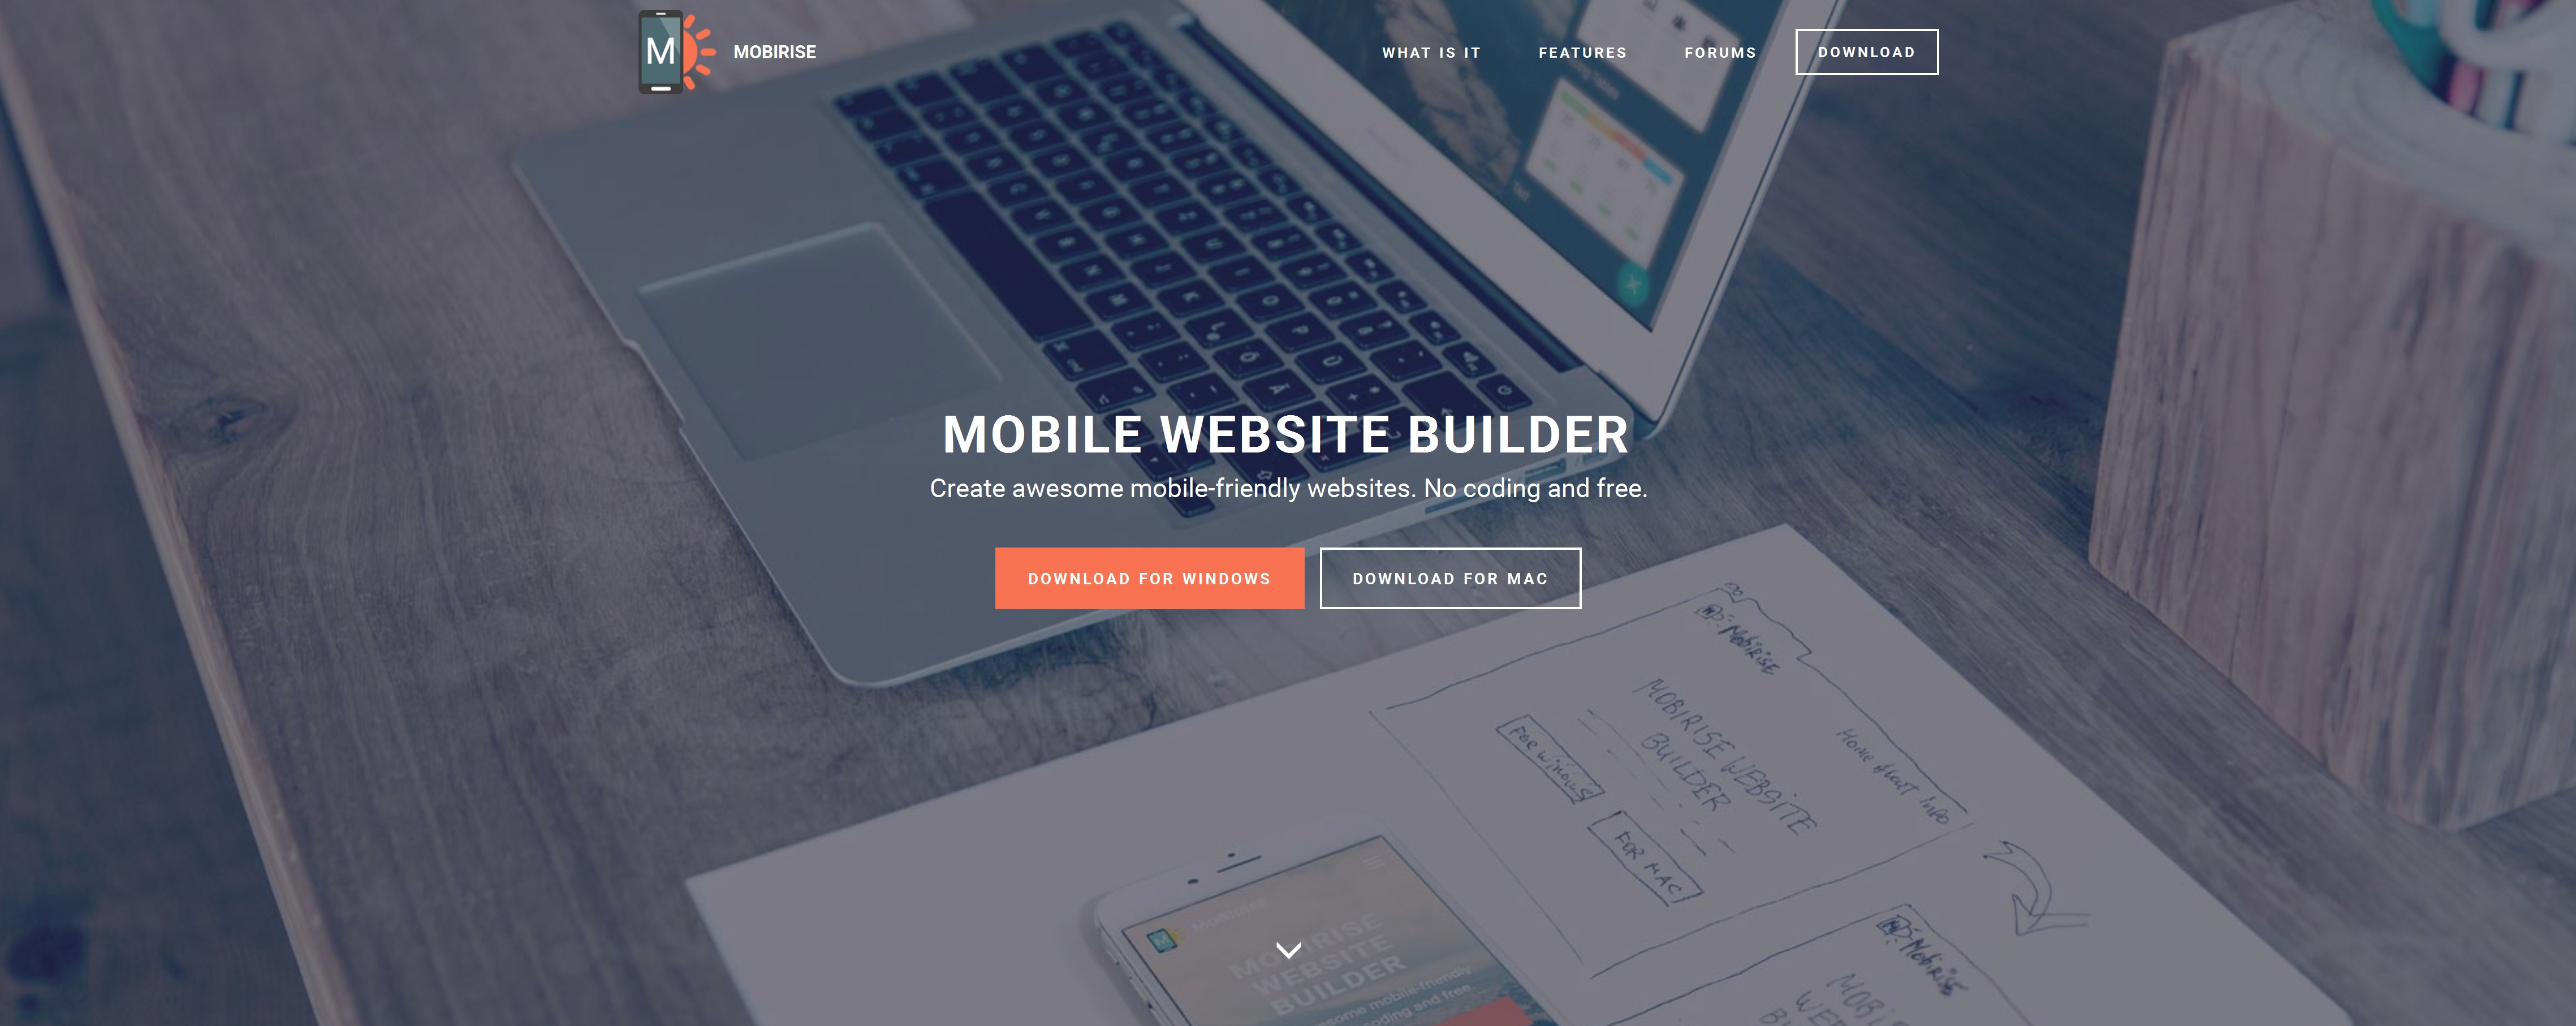 Offline Mobile Website Creator Review